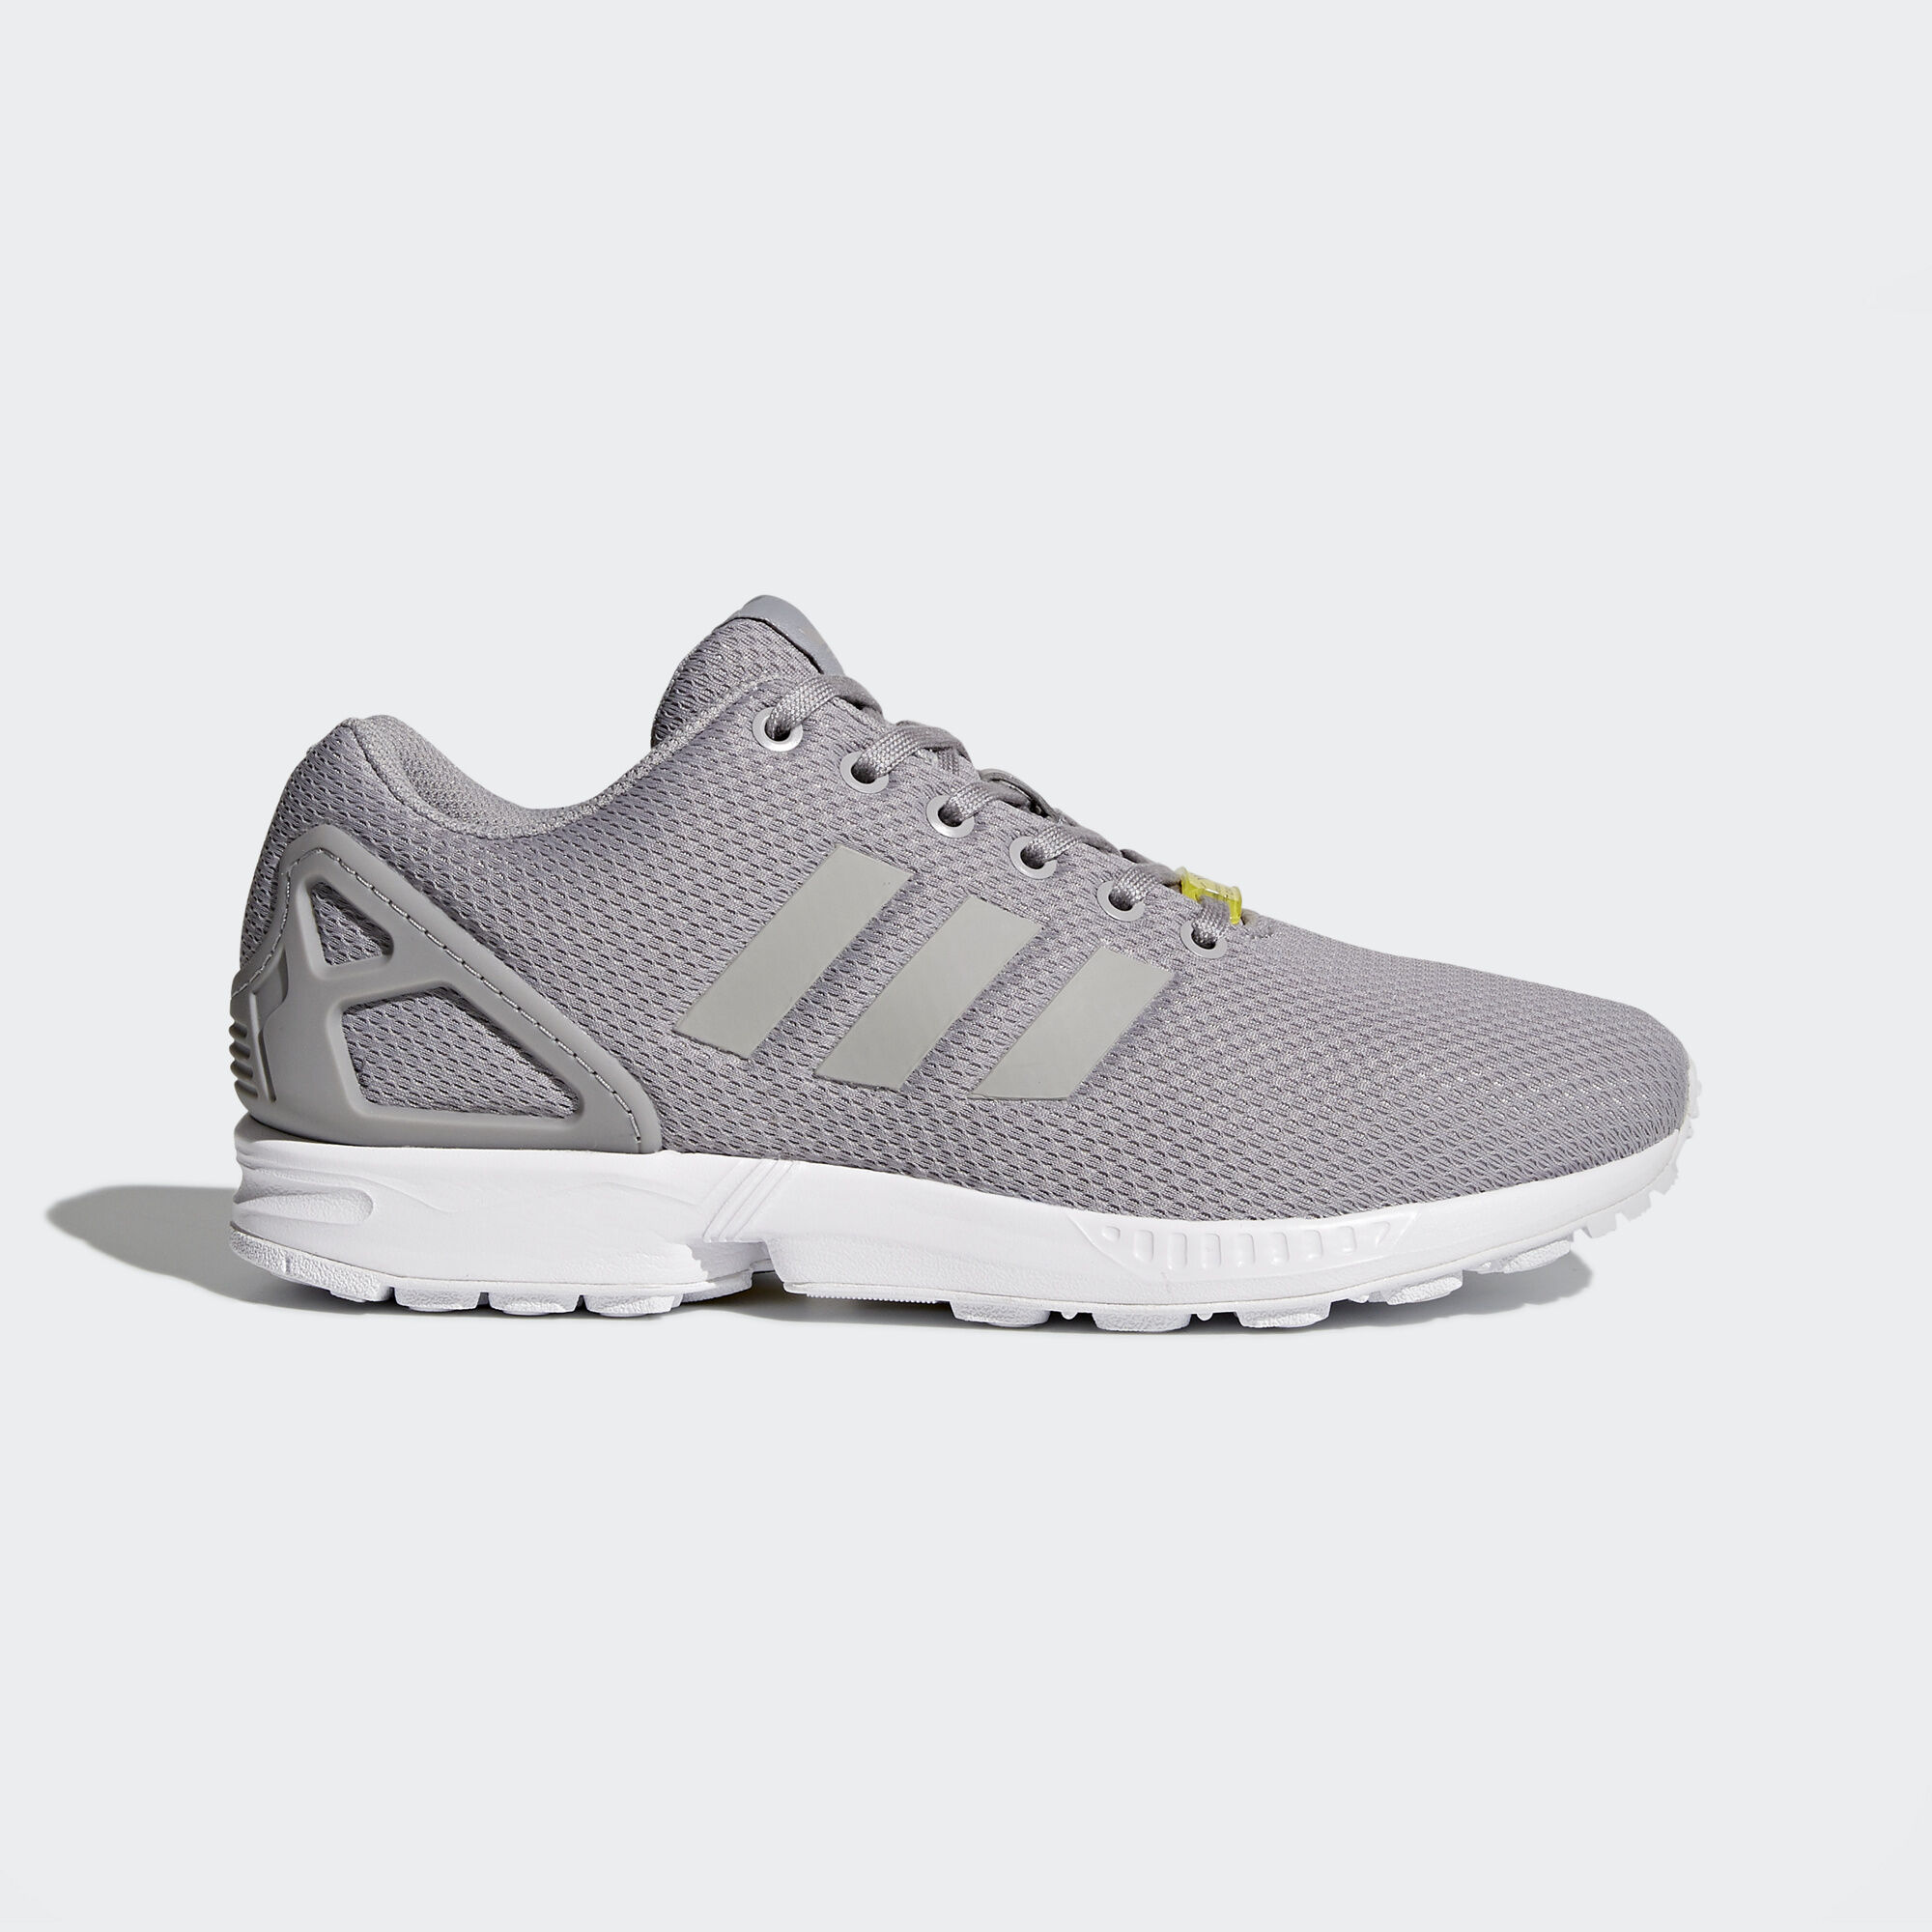 Adidas Zx Flux Light Solid Grey